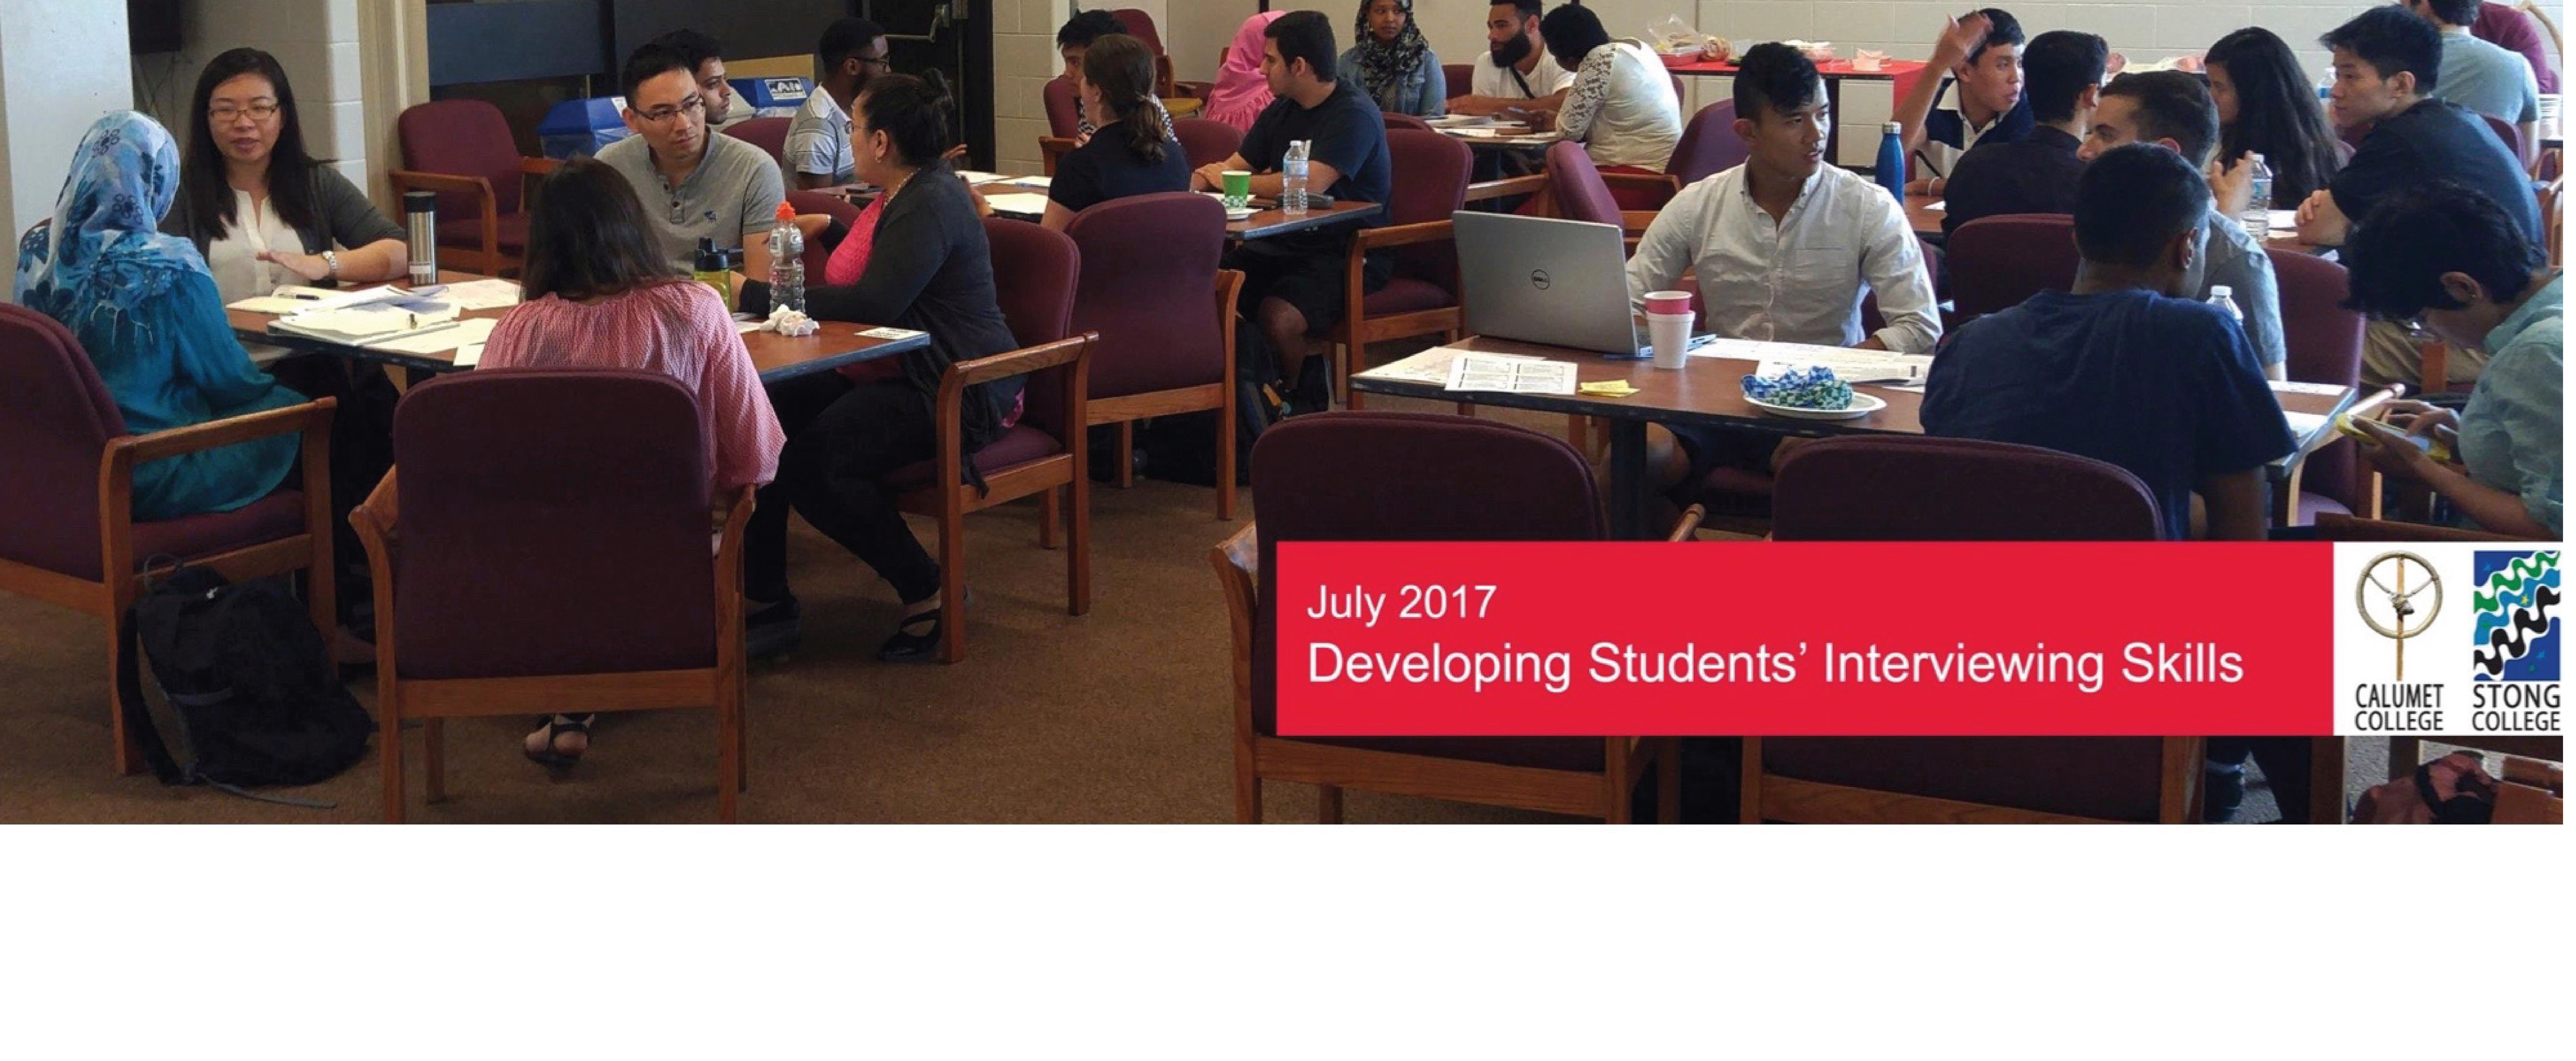 Developing Students' Interviewing Skills